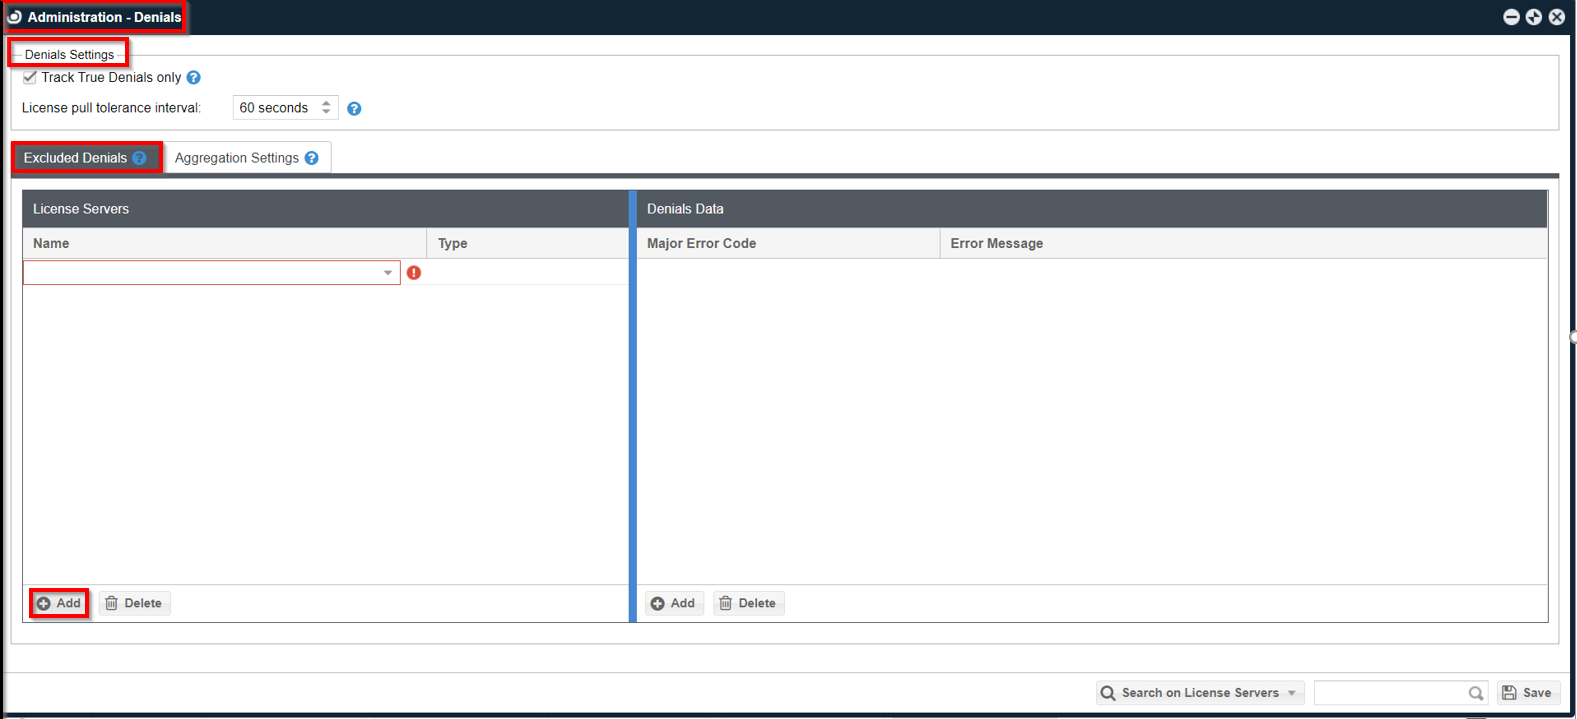 A row inserted into the License Servers Panel using Add button